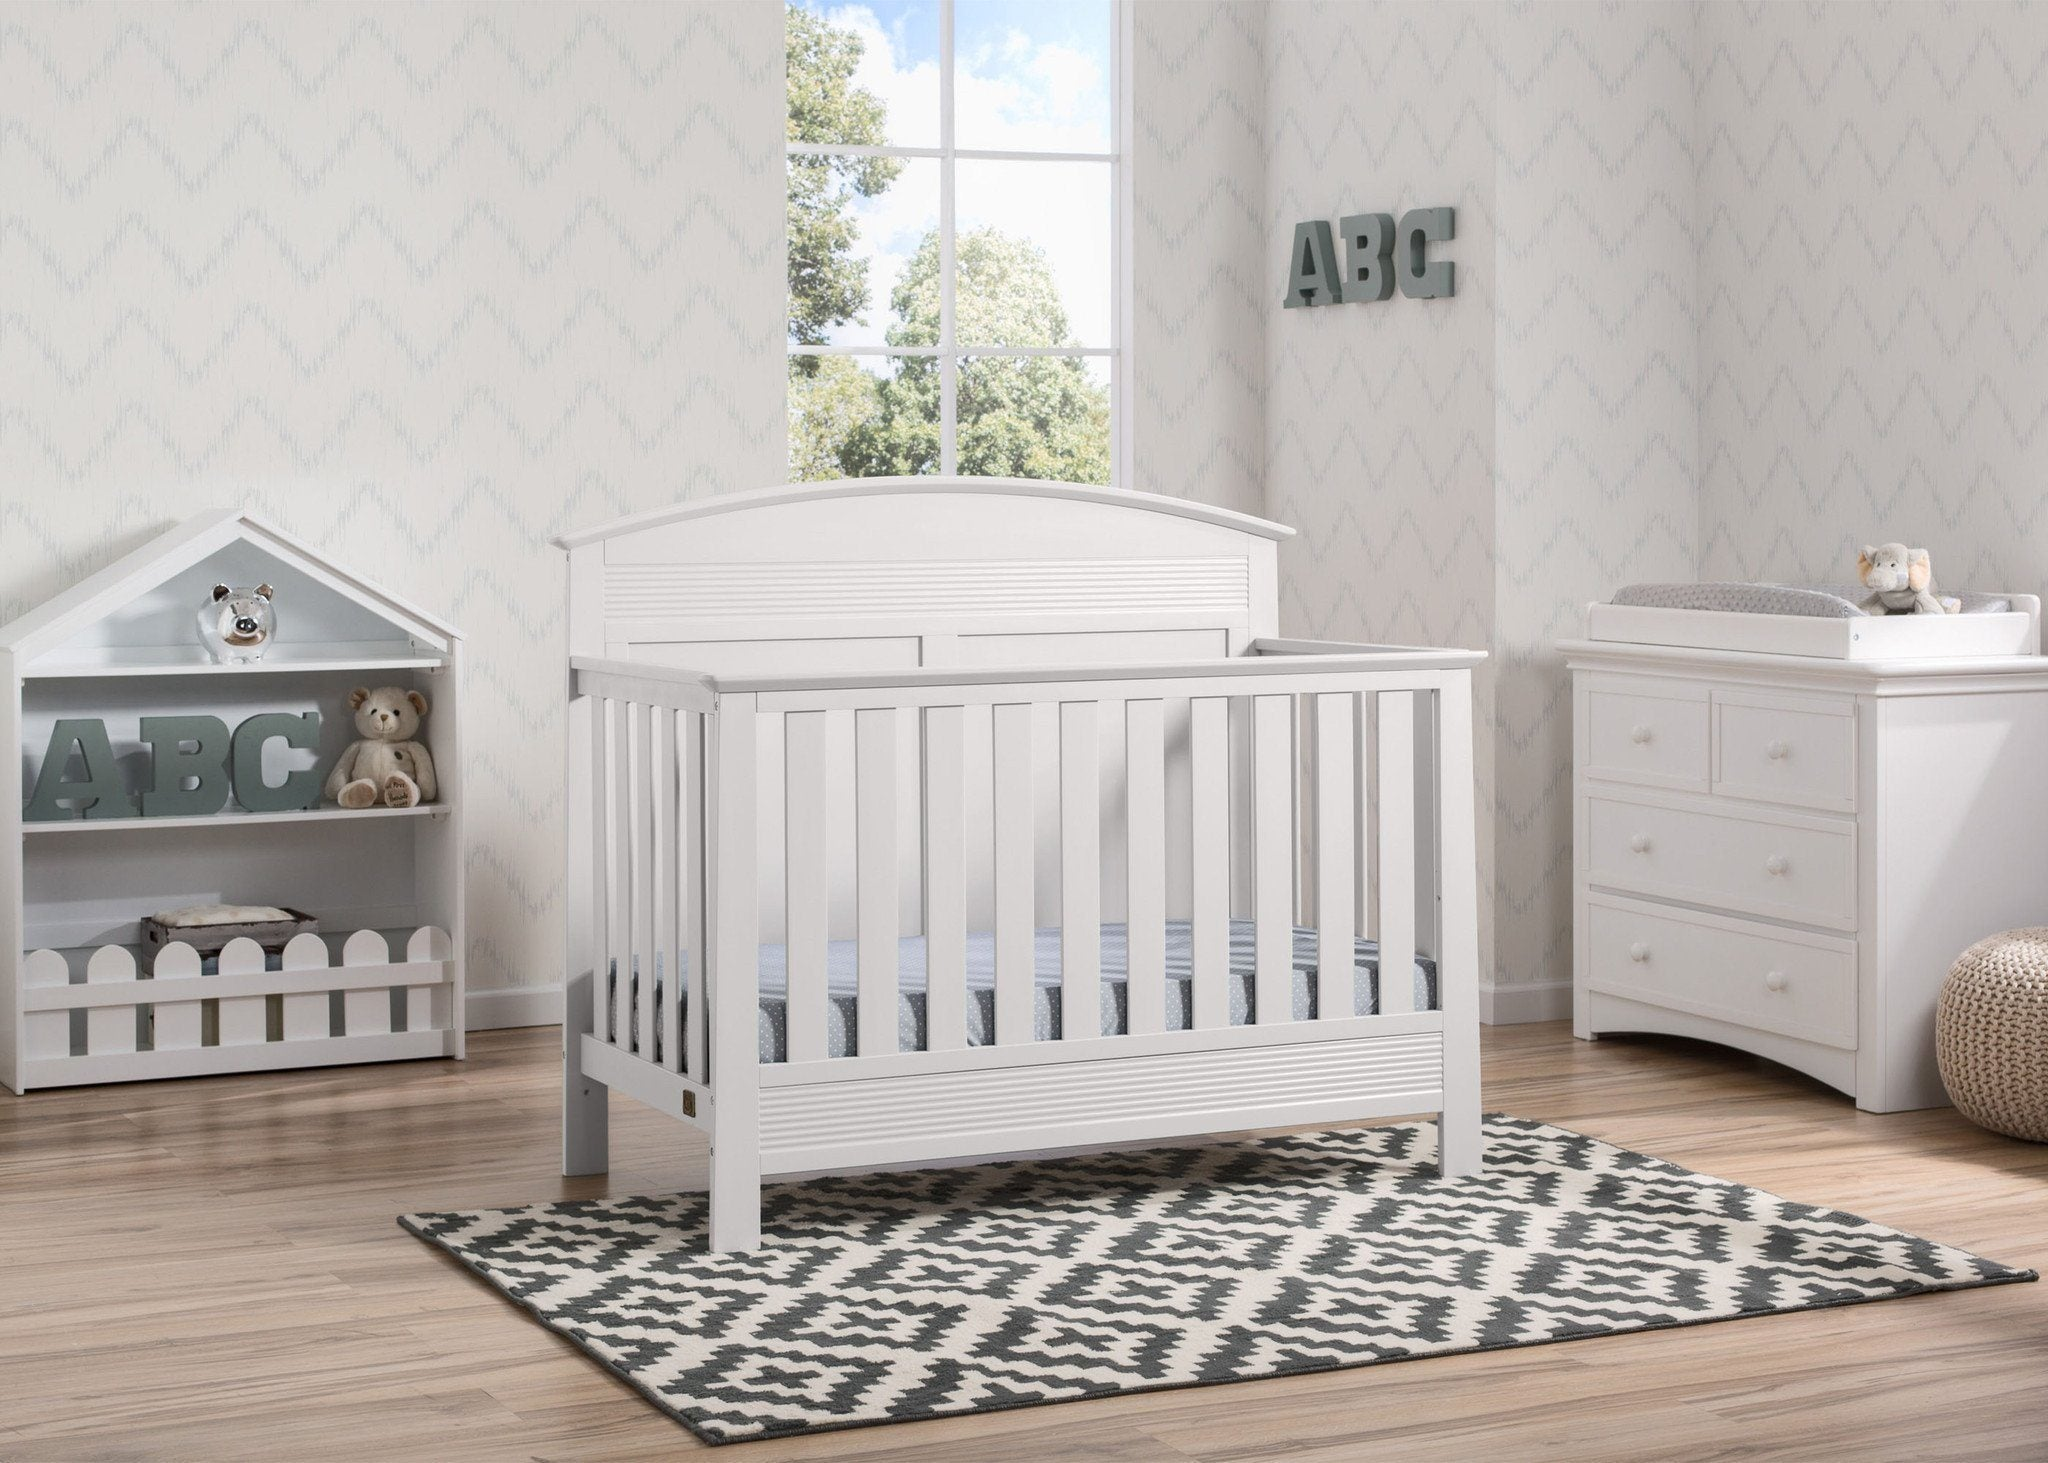 Serta Bianca White (130) Ashland 4-in-1 Convertible Crib, Room View b1b